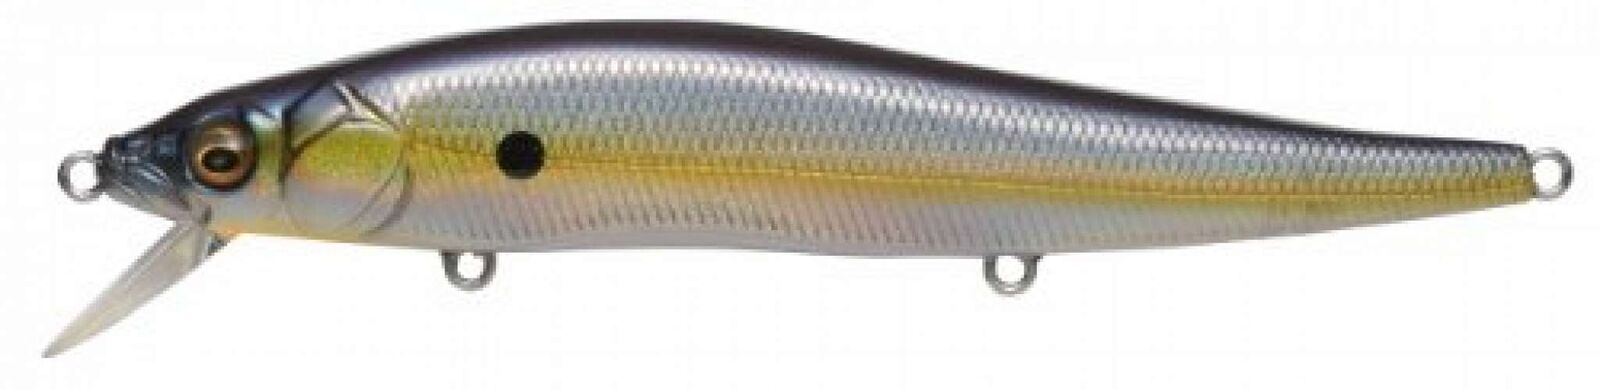 Megabass Lure VISION ONETEN Megabass Sexy Shad F S from JAPAN